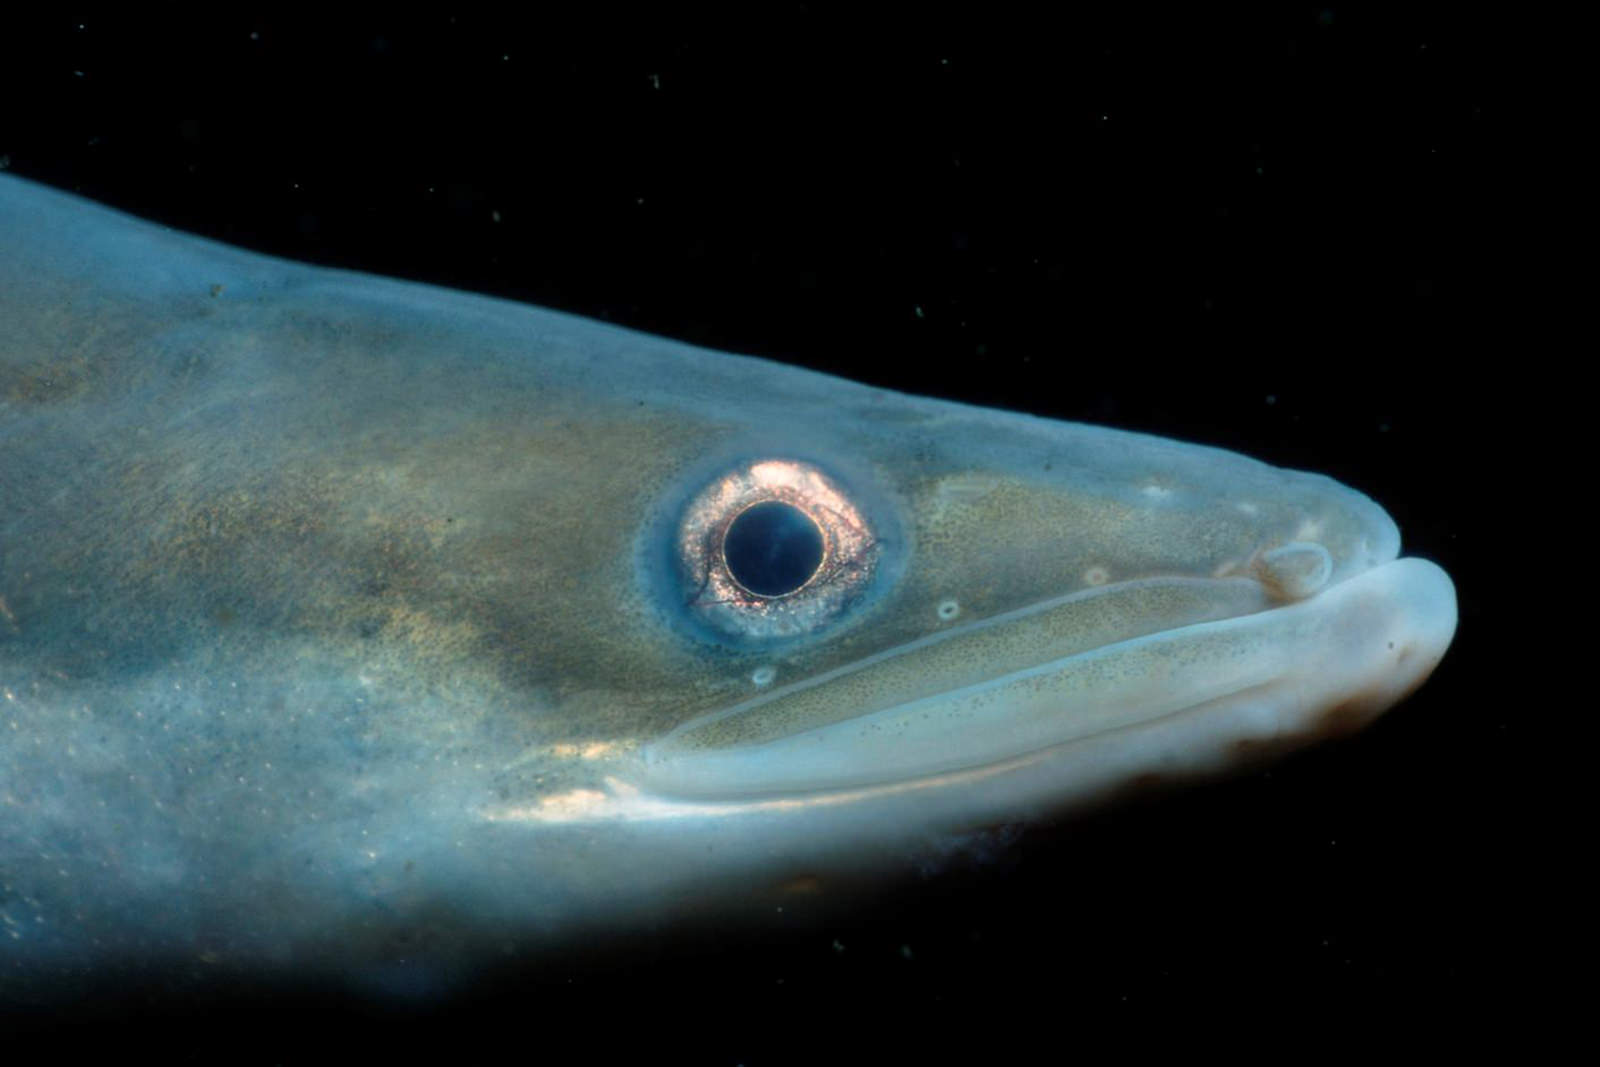 eel - #wetrackthat HTI Acoustic Telemetry